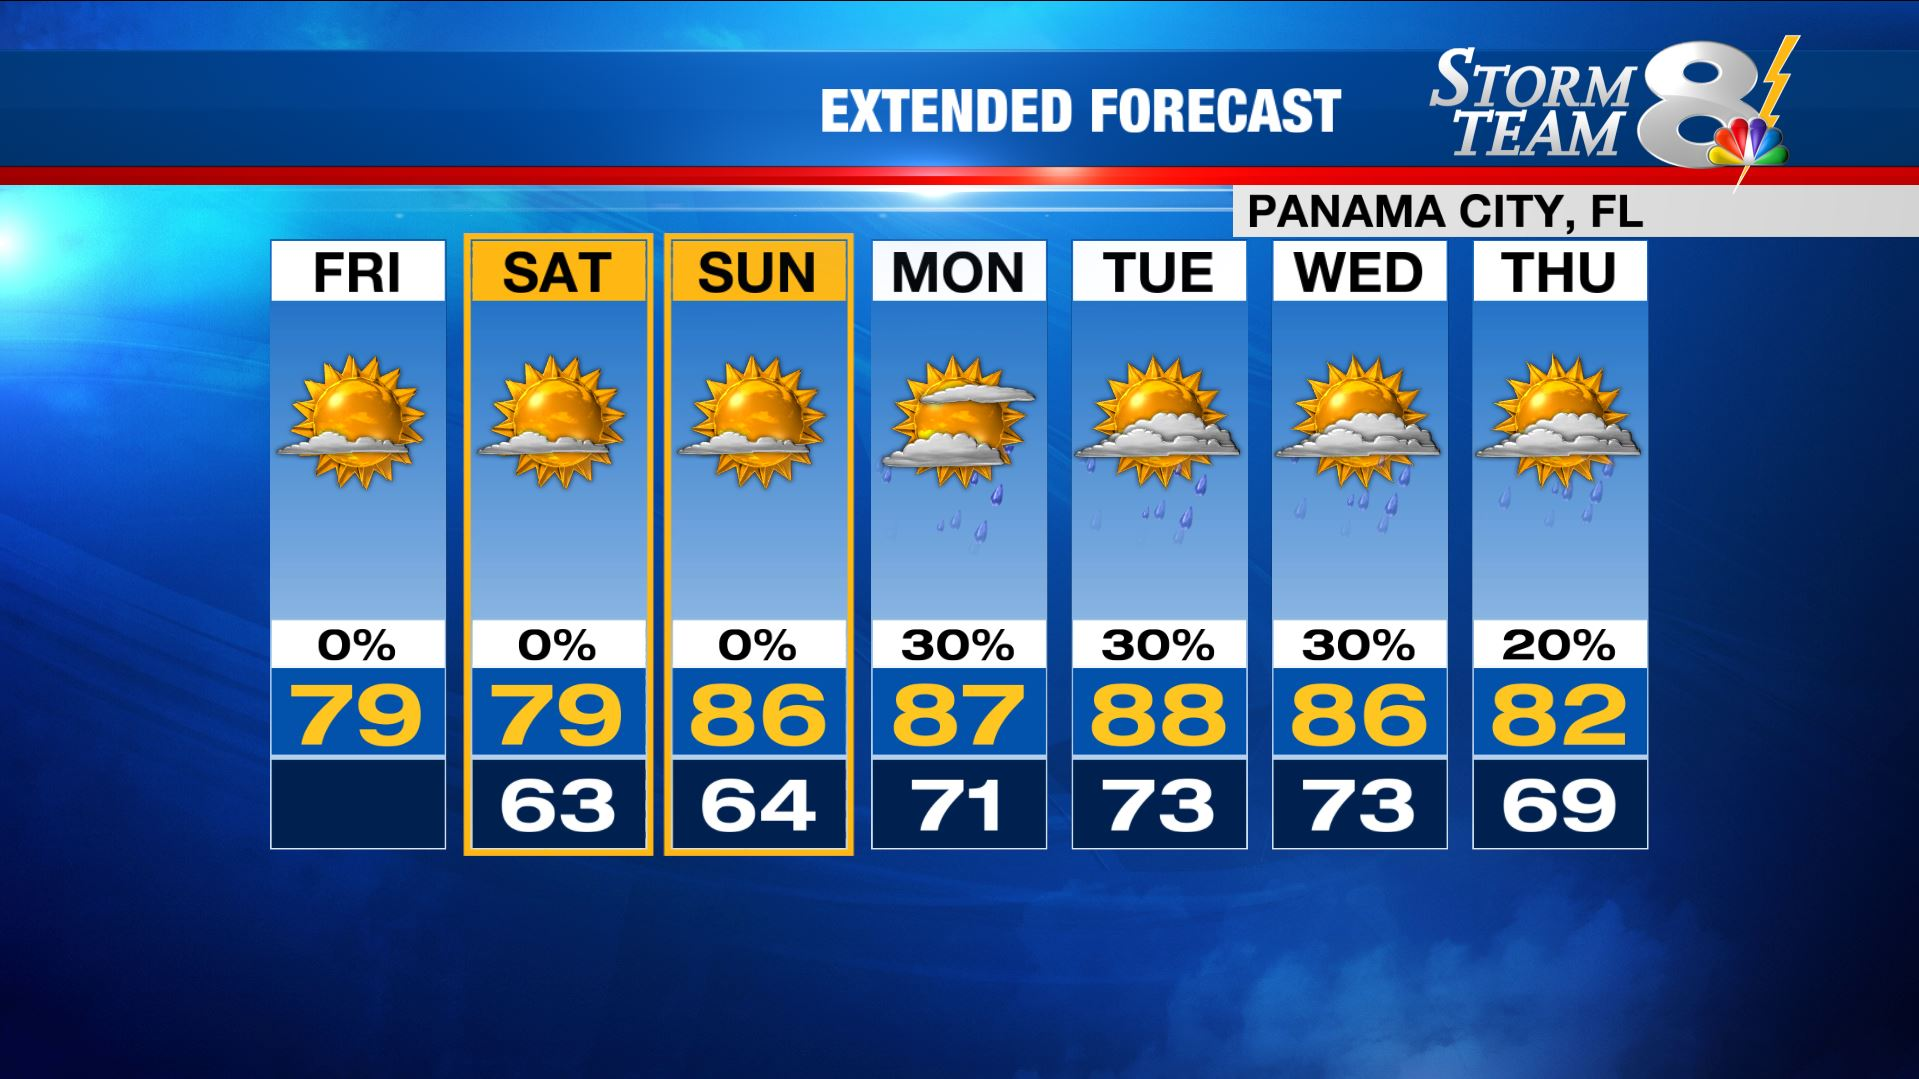 7-day forecast shows chance for spotty showers next week